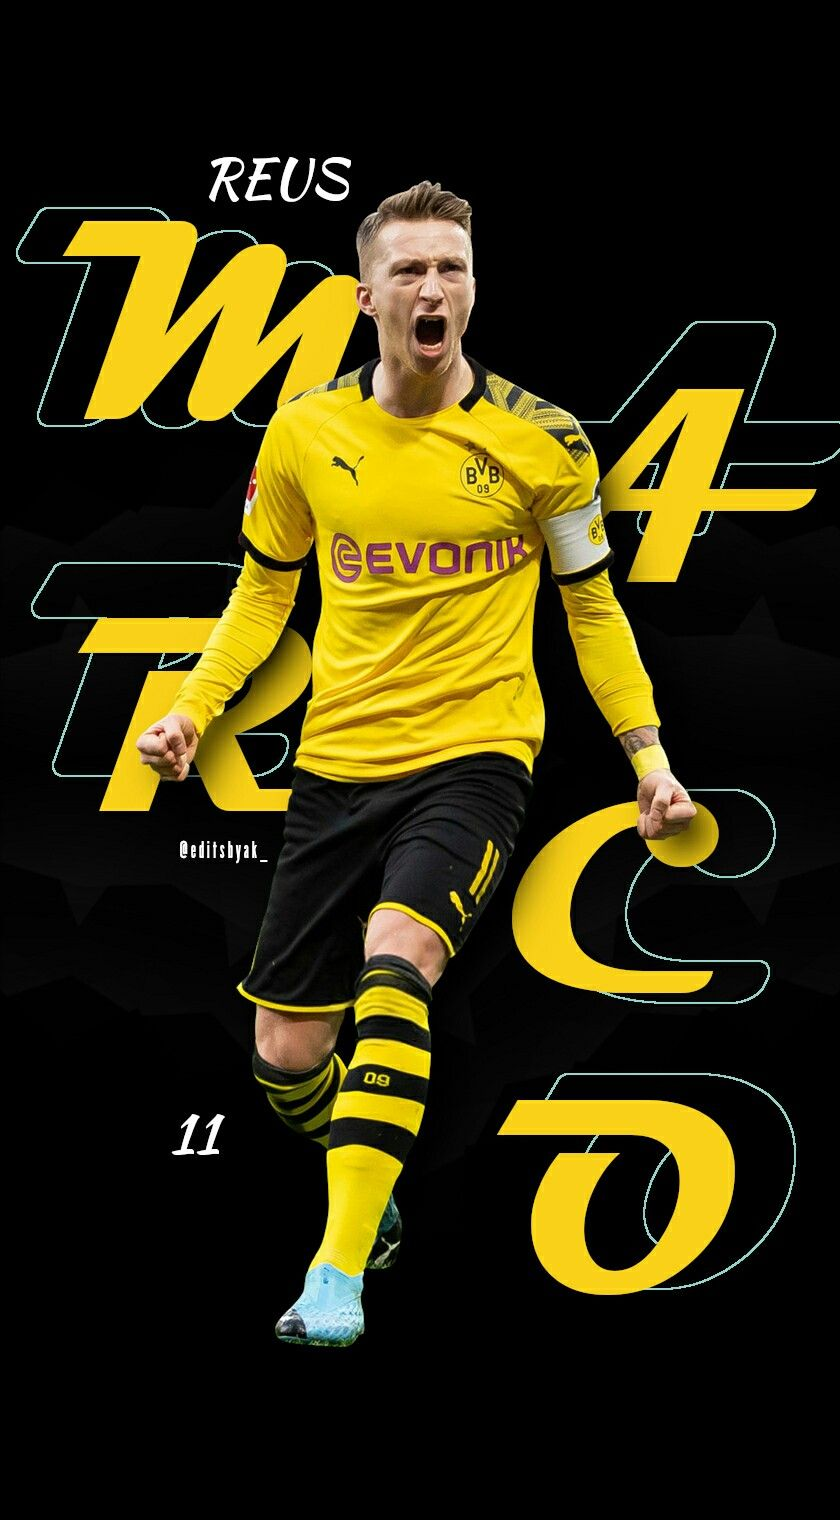 Marco Reus Borussia Dortmund Football Wallpaper In 2020 Football Wallpaper Reus Borussia Dortmund